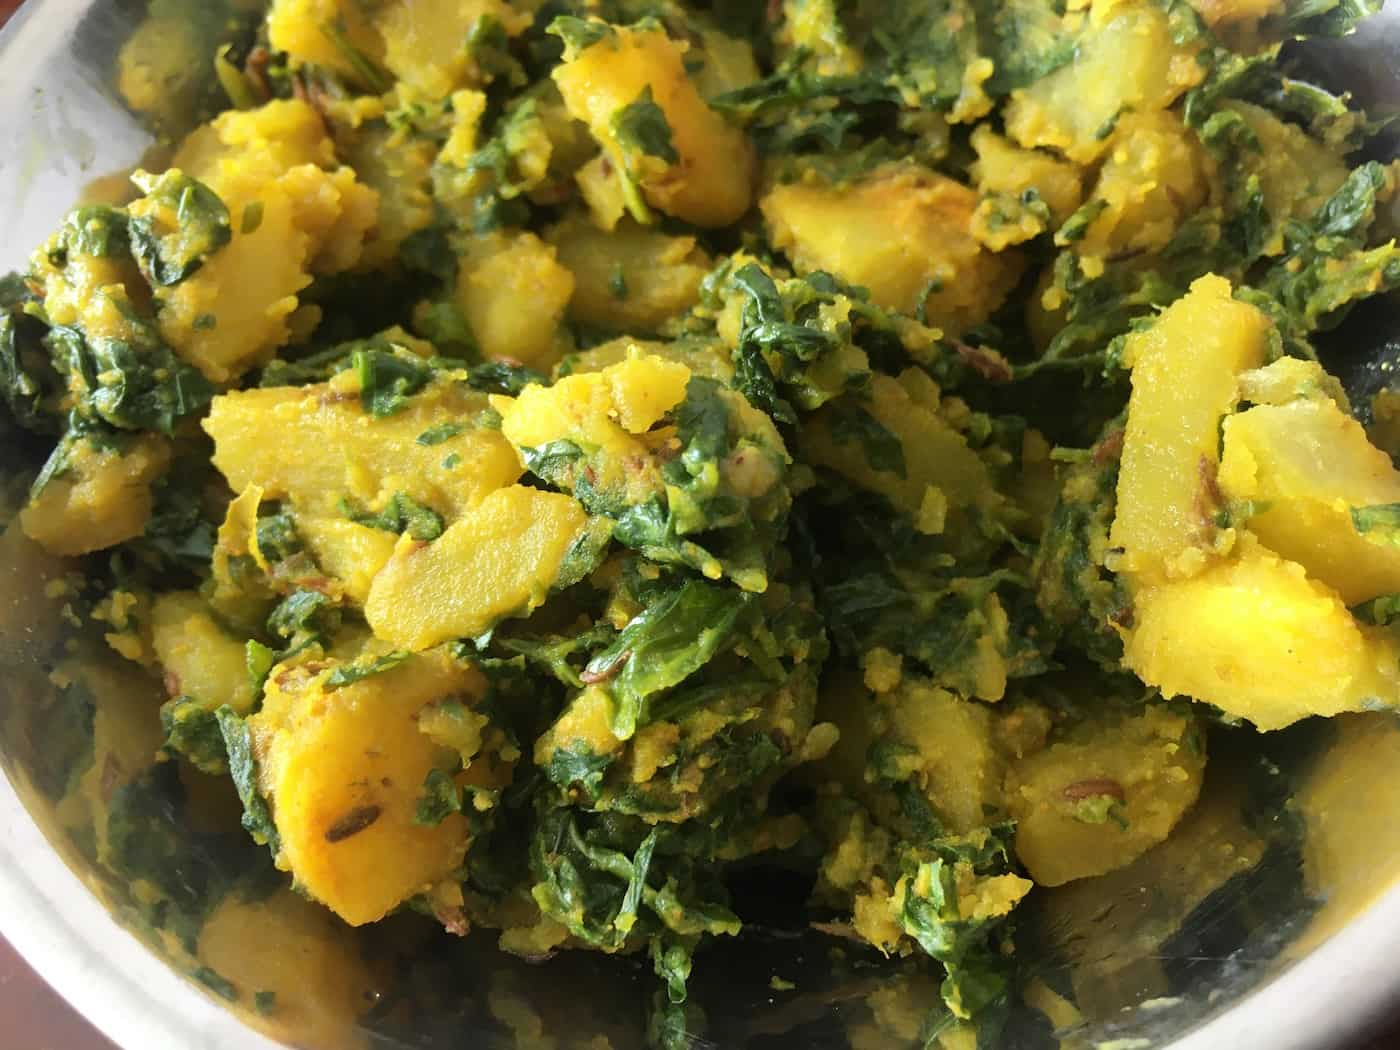 Aloo Methi   Potato and Fenugreek Leaves cooked in Indian style stir-fry